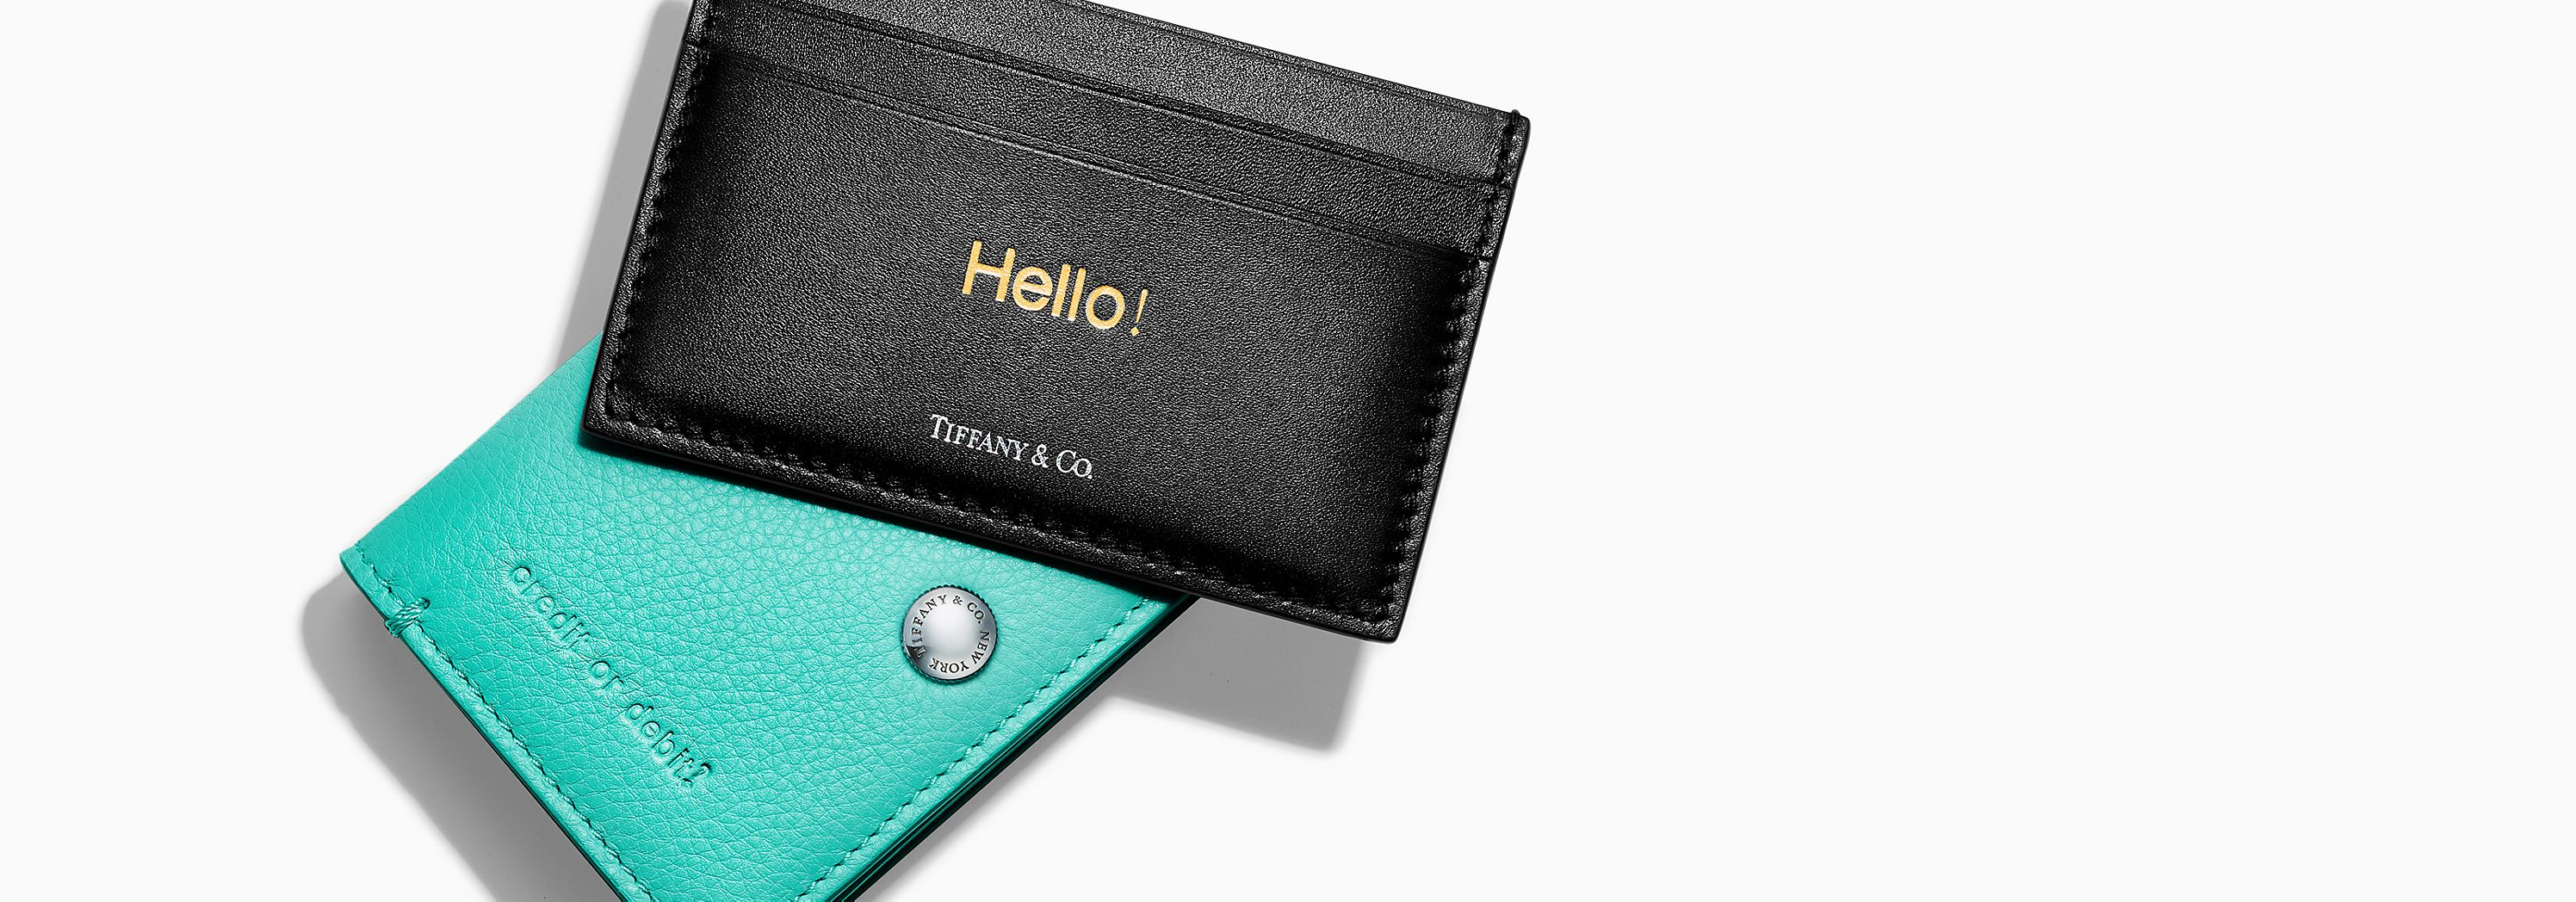 Tiffany & Co. Emboss Small Leather Goods